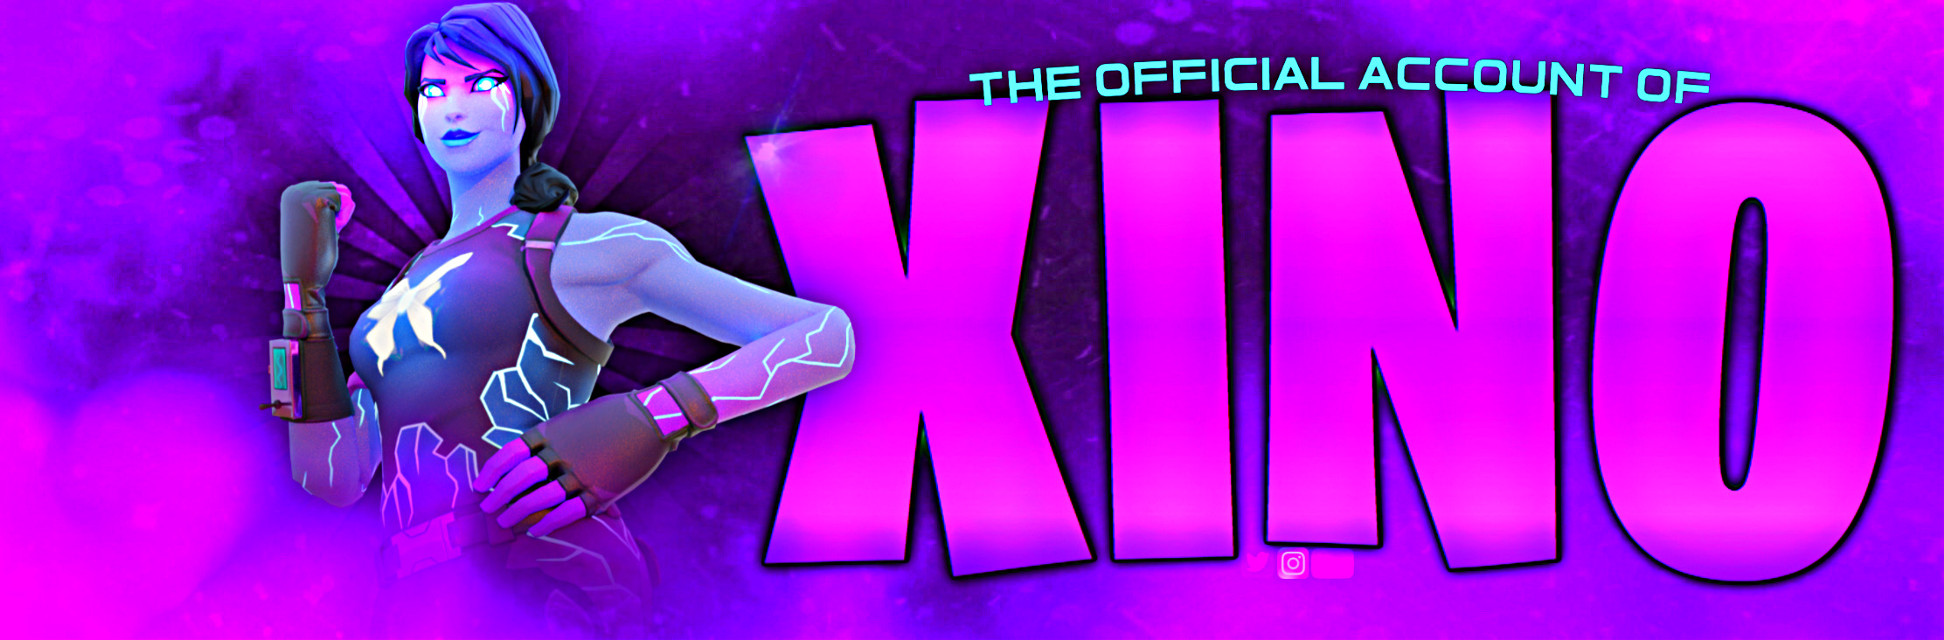 For @xinofx sorry its bad :(   👍 Rate /10 and give your honest thoughts and opinions on this (once comments come back) 🎁 For @ 💎 All my graphics cost nothing at all so if you would like a custom Avi, logo, banner, watermark or thumbnail just ask me 🖥 Tech and apps used: IPad Pro (10.5 inch), PicsArt and Phonto  ☘️ Graphics for Kryptic clan! 😁 I am currently doing a collab with                          ✿.。.:* ☆:**:.𝕚𝕘𝕟𝕠𝕣𝕖 𝕥𝕙𝕖 𝕙𝕒𝕤𝕙𝕥𝕒𝕘𝕤.:**:.☆*.:。.✿   #fortnite #fortniteinstagram #igfortnite #instafortnite #gaming #fortnitegames #fortniteplays #fortnitepower #fortniteworld #fortnitenews #fortnitegameplay #fortnitewin #victoryroyale #fortnitetime #fornitememe #fortnitepeople #fortnitevibes #videogame #fortnitepictures #fortnitepic #fortnitetoday #fortniteday #fortnitenight #fortnitemorning #fortniteafternoon #fortnitesleepovers #fortnitegaming #fortnitesquad #fortnitesniping #fortniteleaks #nonsleepfortnite #fortnitememes #fortnitejokes #fortnitecommunity #fortniteplayer #fortnitereplay #fortniteteam #somefortnite #fortnitebiz #fortnitepoint #fortnitethegame #backtofortnite #fortnitestreamer #fortnitebattleroyal #fortniteassociation #fortnitefun #fortnitefunmoments #playingfortnite #fortniteandchill #fortnitekills #fobrtnitewingame #fortniteclip #fortnitehighlights #fortnitechannel #fortnitetv #fortnitetube #fortnitecontest #fortniterematch #fortniteset #fortniteniversity #fortniteseason #fortnitedance #fortnitescoring #fortniteplayoffs #playersfortnite #fortnitematch #fortnitebeast #fortnitesolo #fortniteleague #igfortniteseason #fortnitefinals #halffortnite #fortniteshop #fortnitephotos #fortnitetie #fortnitetournament #fortnitespectator #fortnitechampionship #fortniteislit #litfortnite #fortnitenow #gofortnite #fortnitedaily #fortnitepokerface #gamingpeople #iggaming #gamingofinstagram #instagames #gamers #bestfortnitegame#fortniteplot #fortnitetricks #fortnitelab #fortnitejoy #fortniteart #fortniteglimse #fortnitemadness #fortnitepc #fortniteonline #fortnitebestplayers #quickgame #gamestop #fortnitesimulation #fortnitepsychology #gamescom #postgame #gamestagram #gamesworkshop #gameshow #gamestation #gamestore #fortnitestore #fortnitedancing #gamespot #fortnitespot #gamesetup #fortnitecards #fortnitescreenshot #fortniting #fortniteskins#fortnitenews #playstation #fortnitely #fortniteps4 #fortniteps #fortnitexbox #fortnitemoney #fortniteduos #fortniteline #fortnitechallenges #fortnitemares #facereveal #fortnite #fortnitebattleroyale #fortnitechapter2 #fortnitechap2 #yeet #meme #memes #cool  #minecraft #fortniteart #art #fortnitelogo #logo #fortniteskin #fortniteskins #fortnitepeople #fortnitebanner #banner #fortnitethumbnail #thumbnail #minecraftmeme #minecraftmemes #memez #insane #interesting #wow #amazing #awesome #how #fortnitememes #fortnitememe #gfx #fortnitegfx #minecraftgfx #gfxlogo  #videogame #videogames #minecraftlogo #minecraftbanner #minecraftthumbnail #minecraftart #goat #goated #yt #youtube #picsart #chapter2 #fortnitechapter2 #2 #template #fortnitetemplate #fortnitebannertemplate #bannertemplate #fortnitelogotemplate #imgoated #follow #like #followforfollow #likeandfollow #followandlike #imagoat #ghoultrooper #eliteagent #blackknight #roblox #robloxisgoated #edit #fortniteedit #fortniteedits #edits #designs #fortnitedesigns #evo #bmc #fortnitebackground #fortnitegfx #fortnitethumbnail #fortnitebackground #stopthebots #weird #dog #cat #epic #meme #memetemplate #montage #freethumbnails #brawl #brawlstars #star #stars #brawlstarsthumbnail #freetoedit